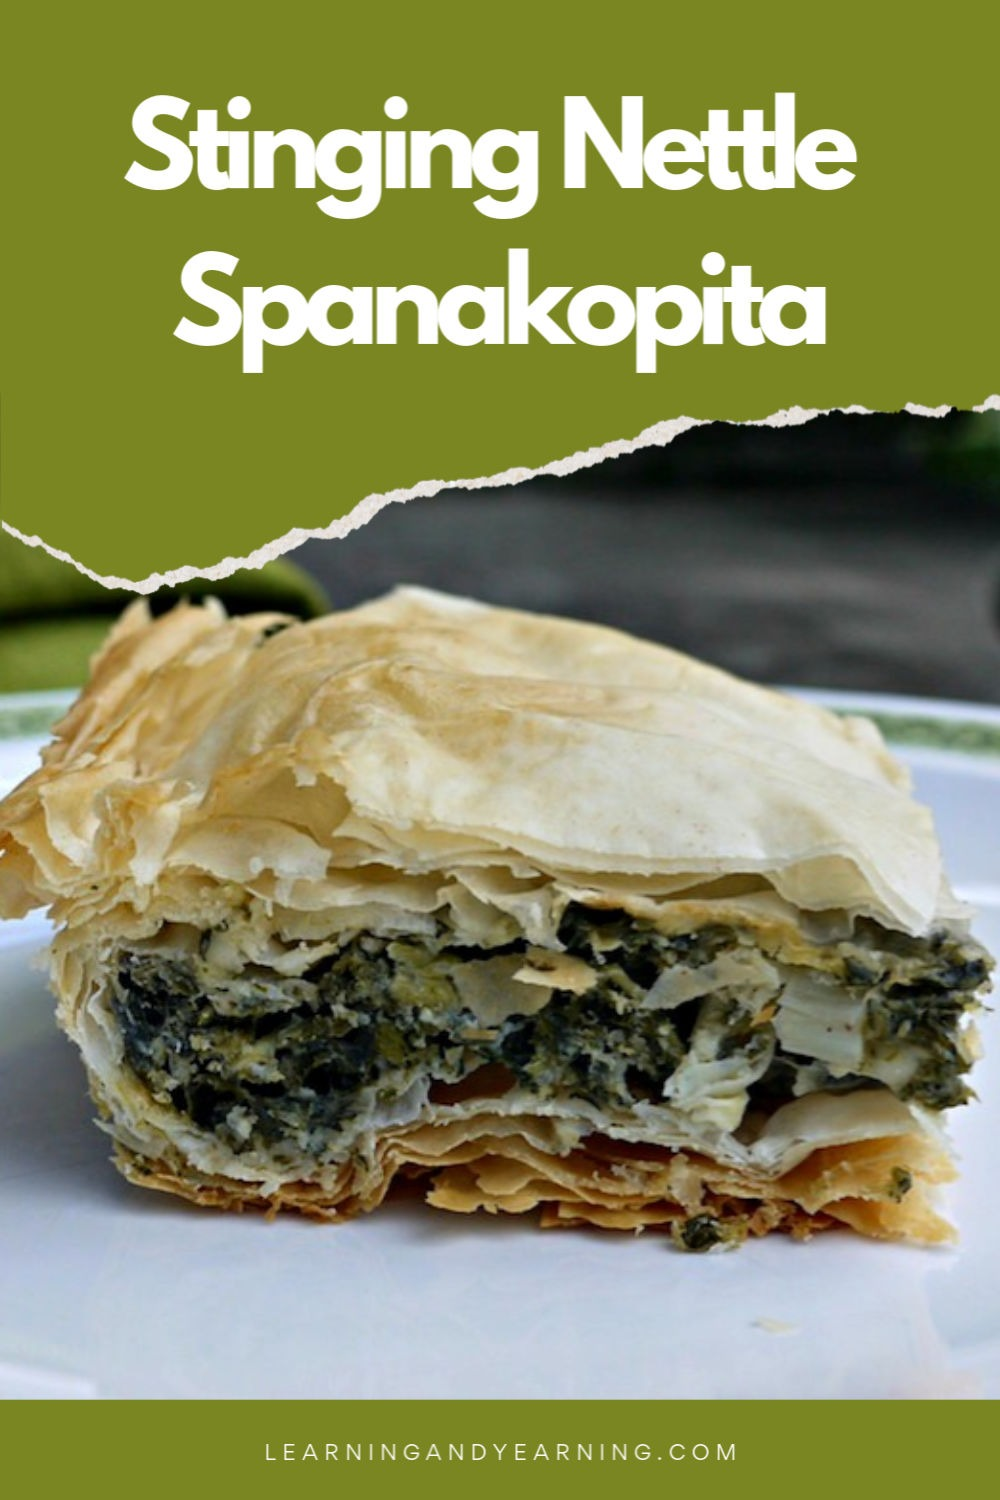 Foraged stinging nettle spanakopita recipe!